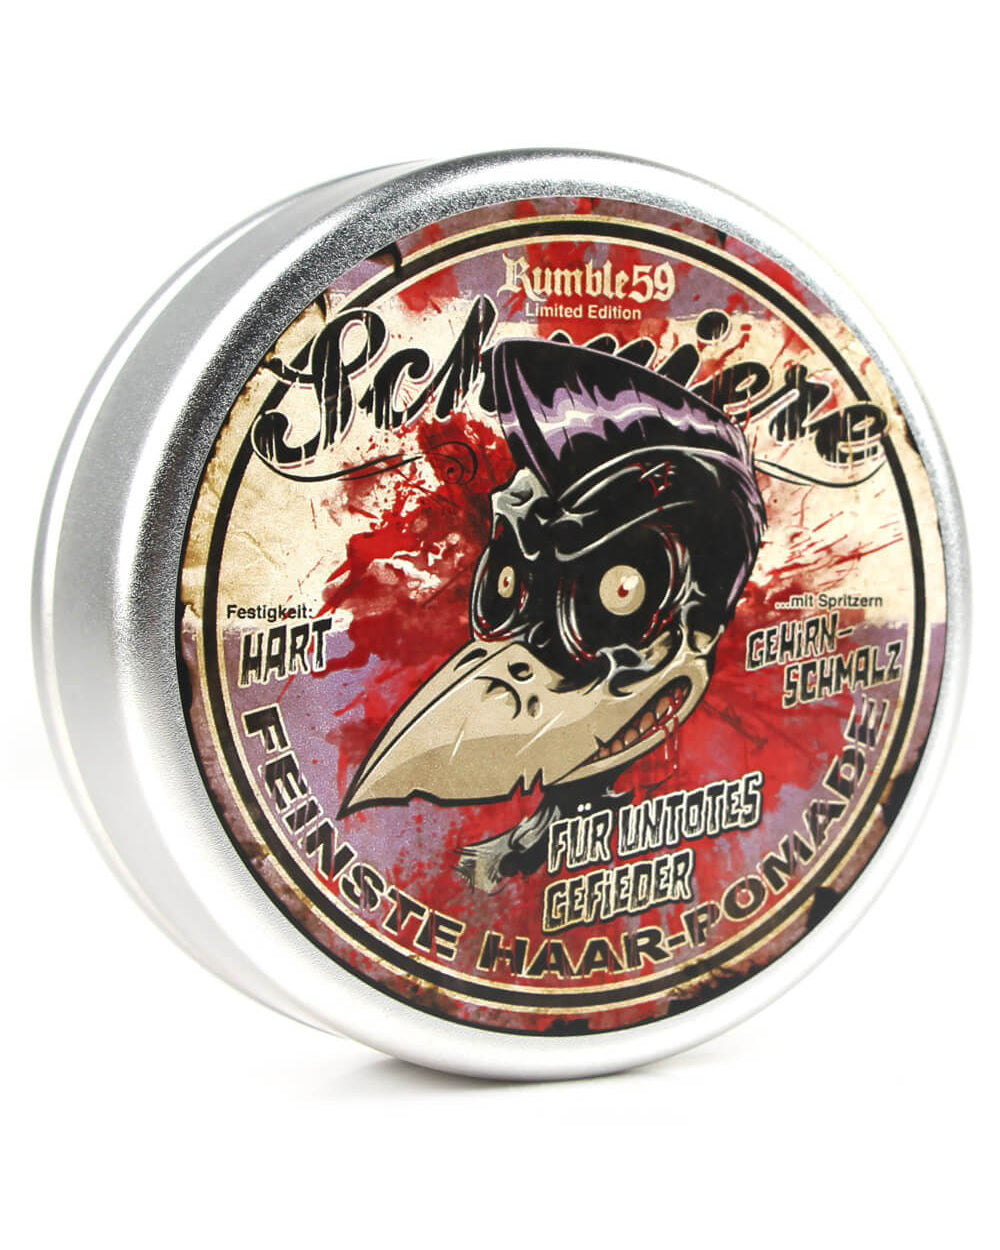 Rumble 59 Zombie Schmiere Pomade